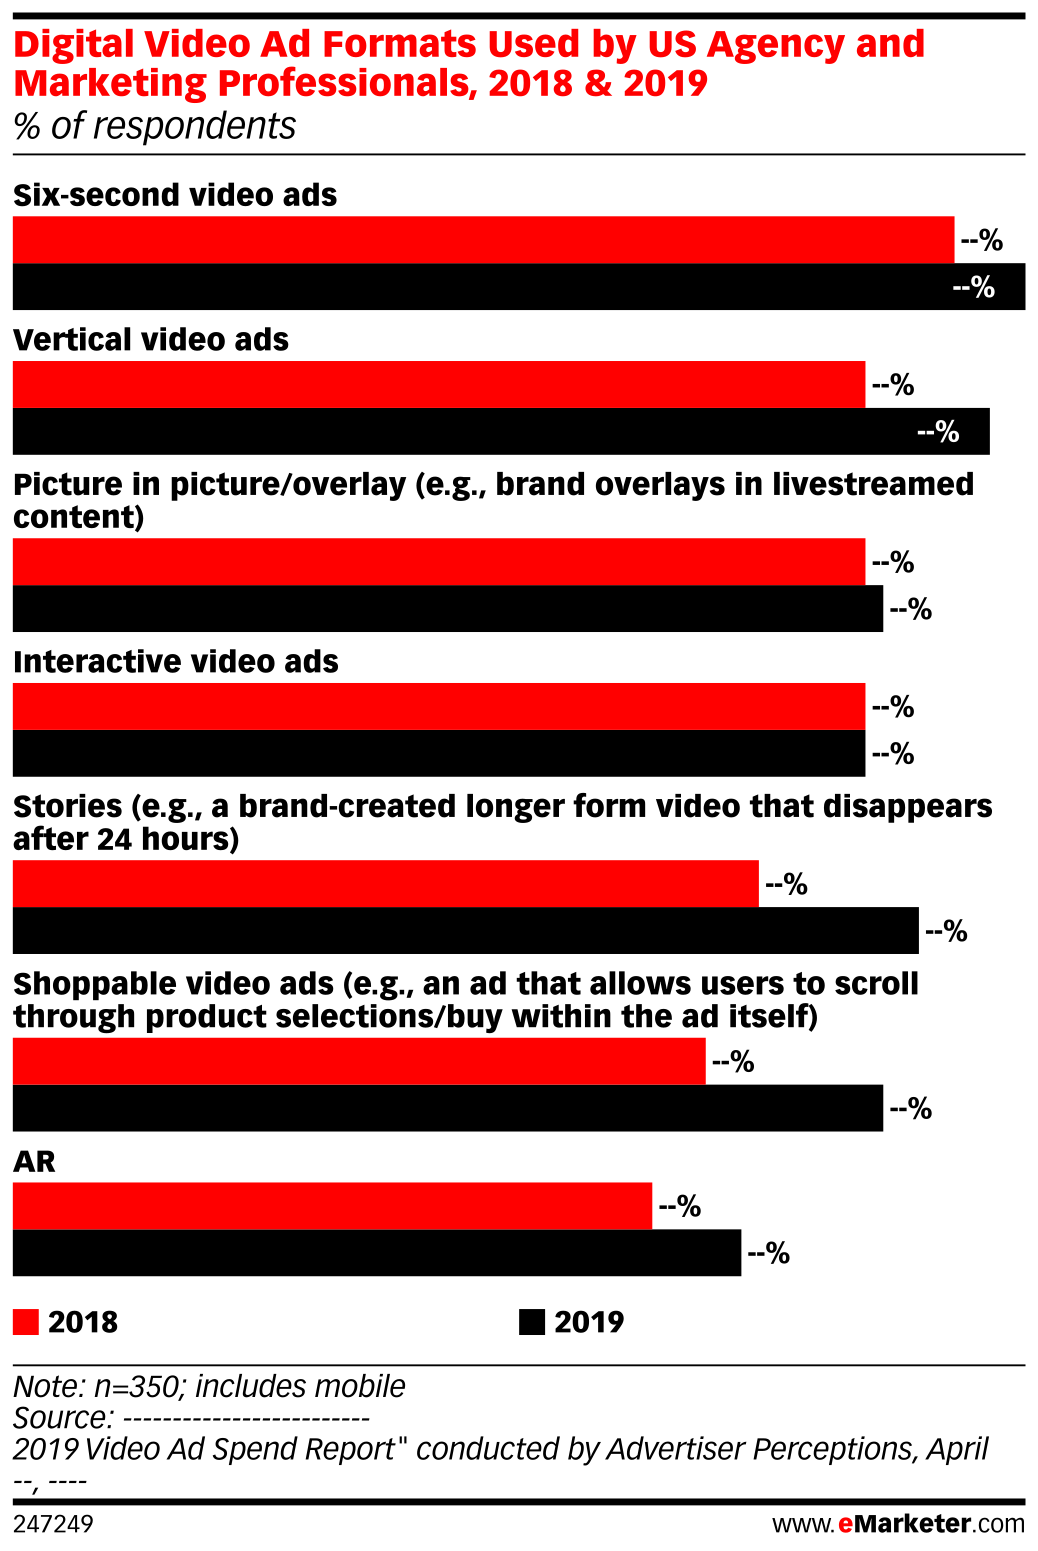 Digital Video Ad Formats Used by US Agency and Marketing Professionals, 2018 & 2019 (% of respondents)